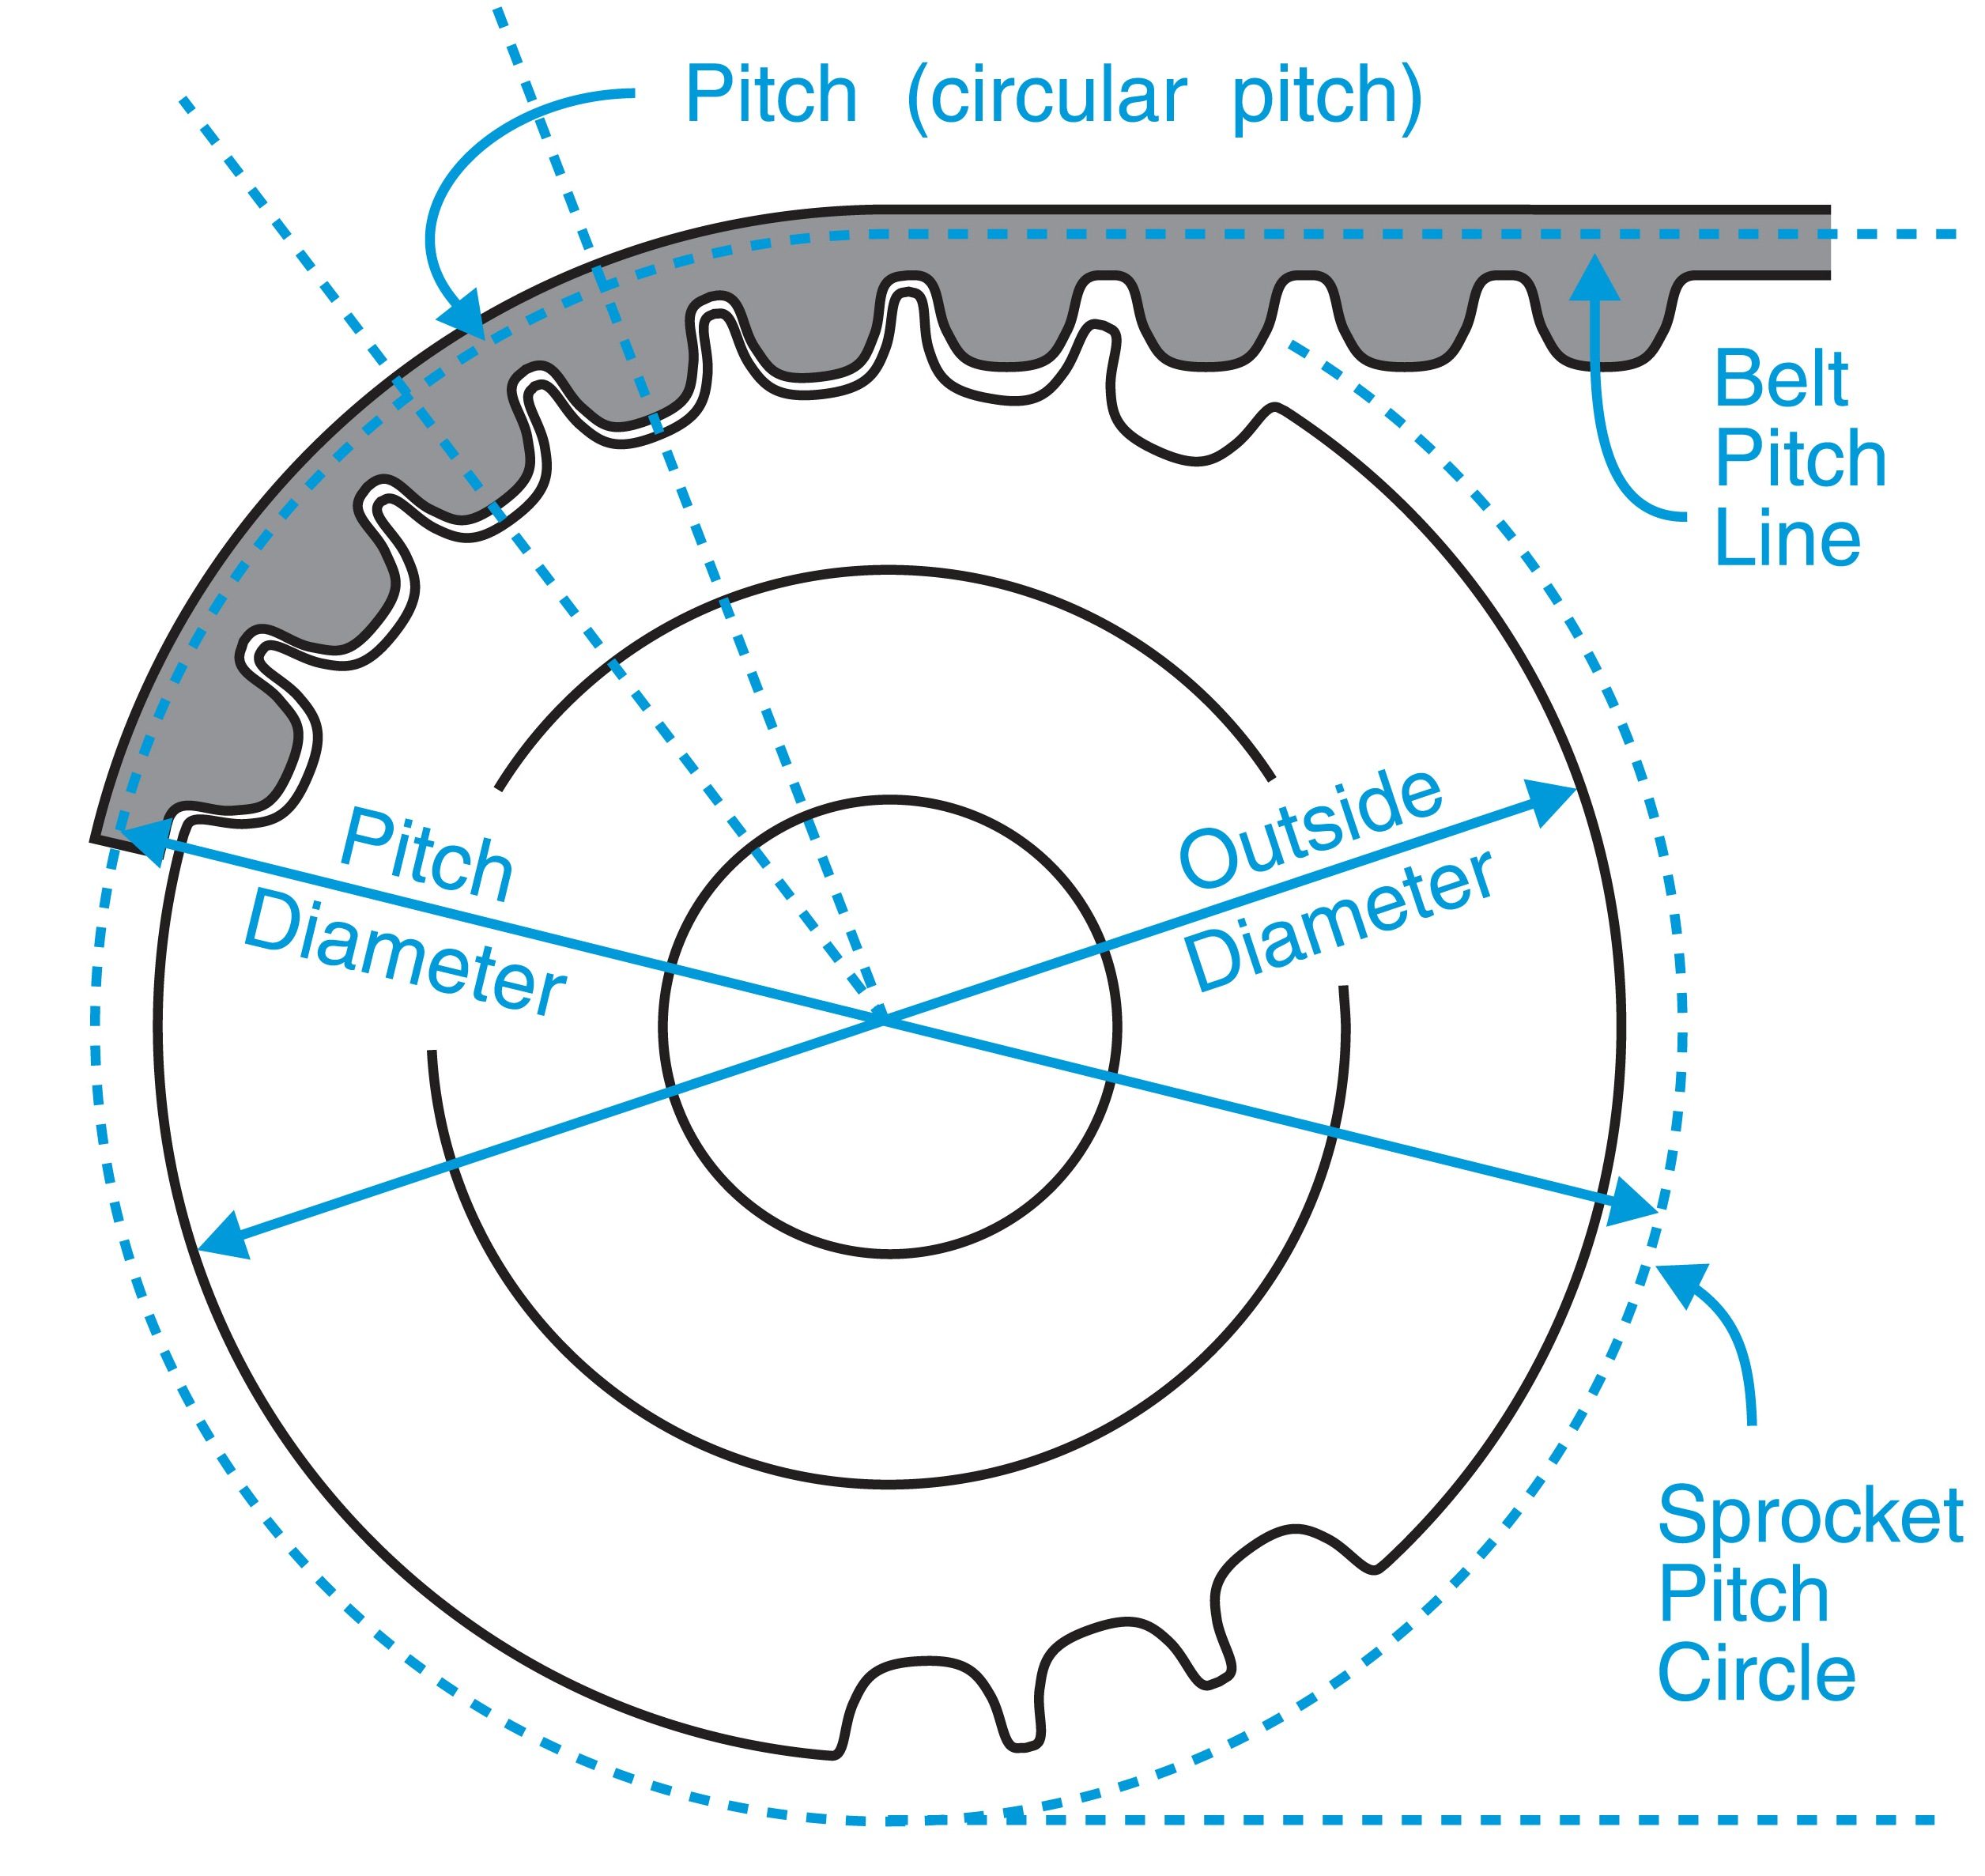 Timing Belt Pulley Pitch Diameter & Outside Diameter Charts